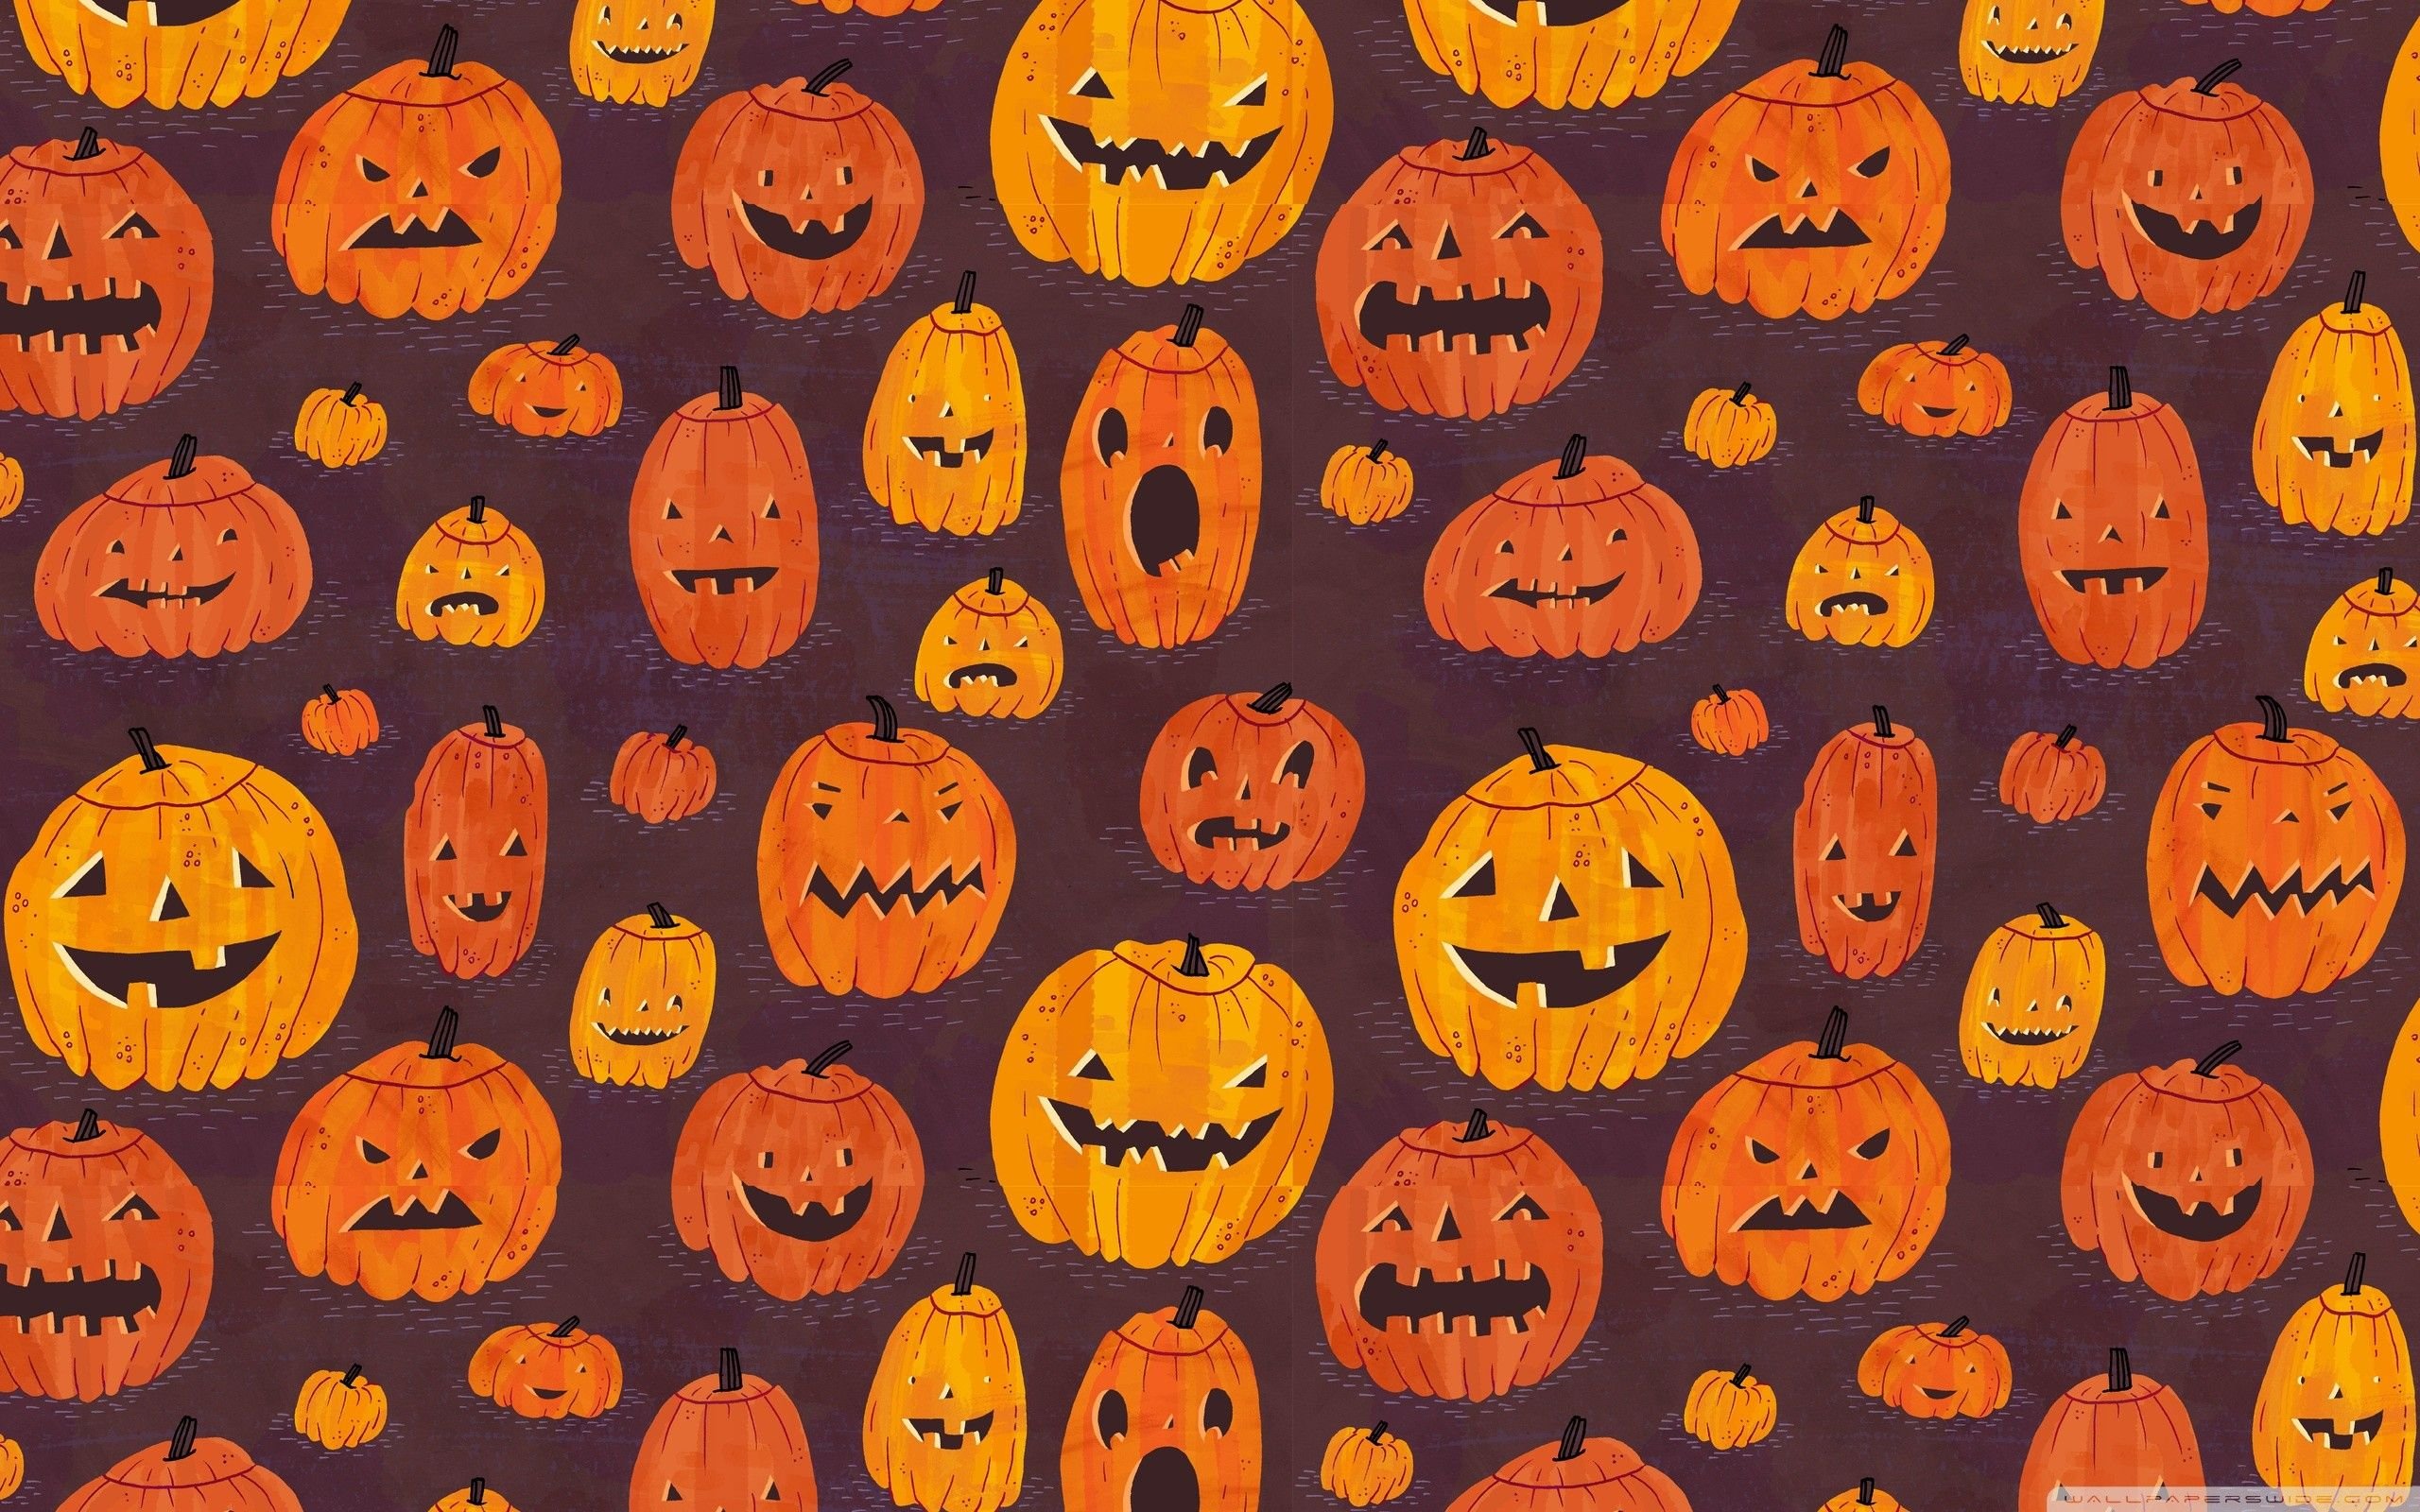 Halloween Backgrounds For Desktop in 2020 Halloween desktop 2560x1600